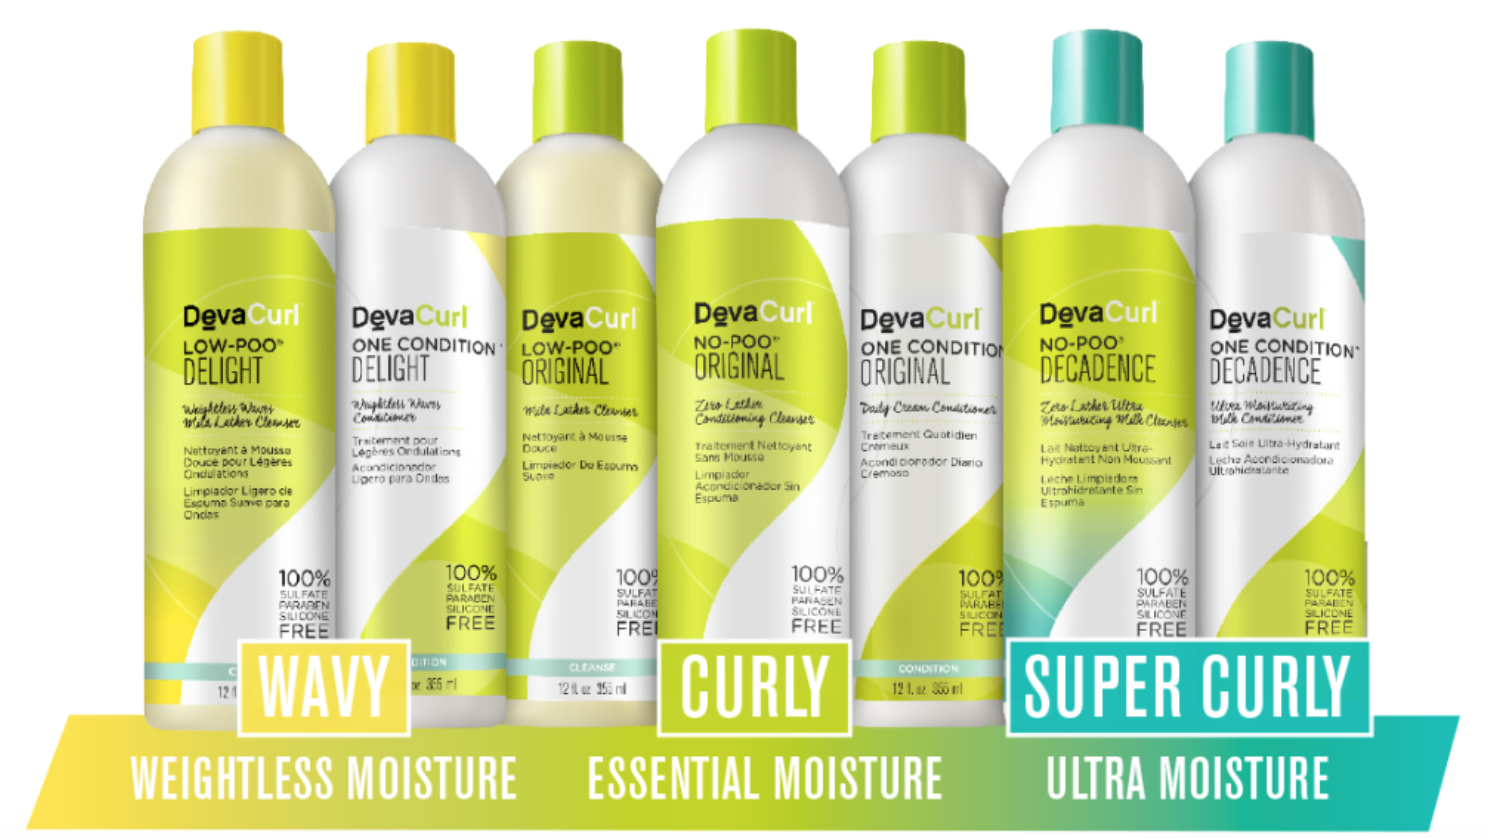 A range of DevaCurl haircare products are lined up against a white background.